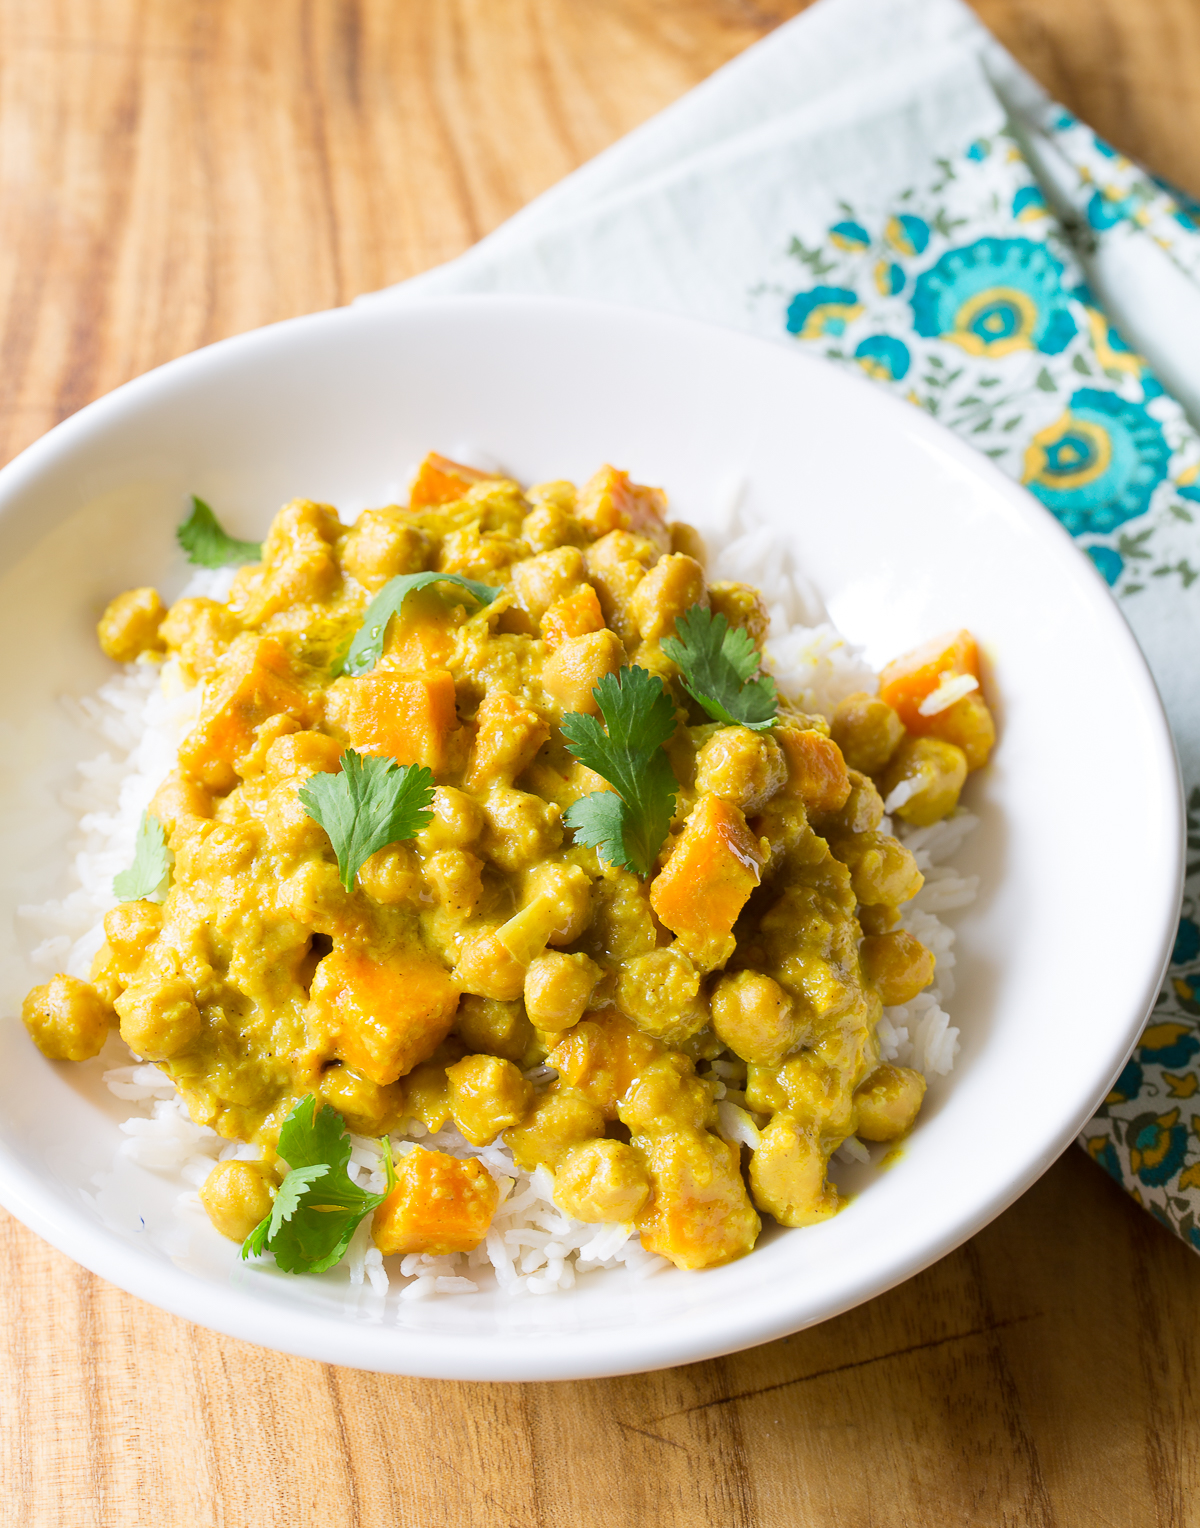 Crockpot Chickpea Curry Recipe #ASpicyPerspective #SlowCooker #Crockpot #Chickpea #Curry #ChickpeaCurry #ChickpeaCurryRecipe #CrockpotCurry #IndianCurry #Indian #GlutenFree